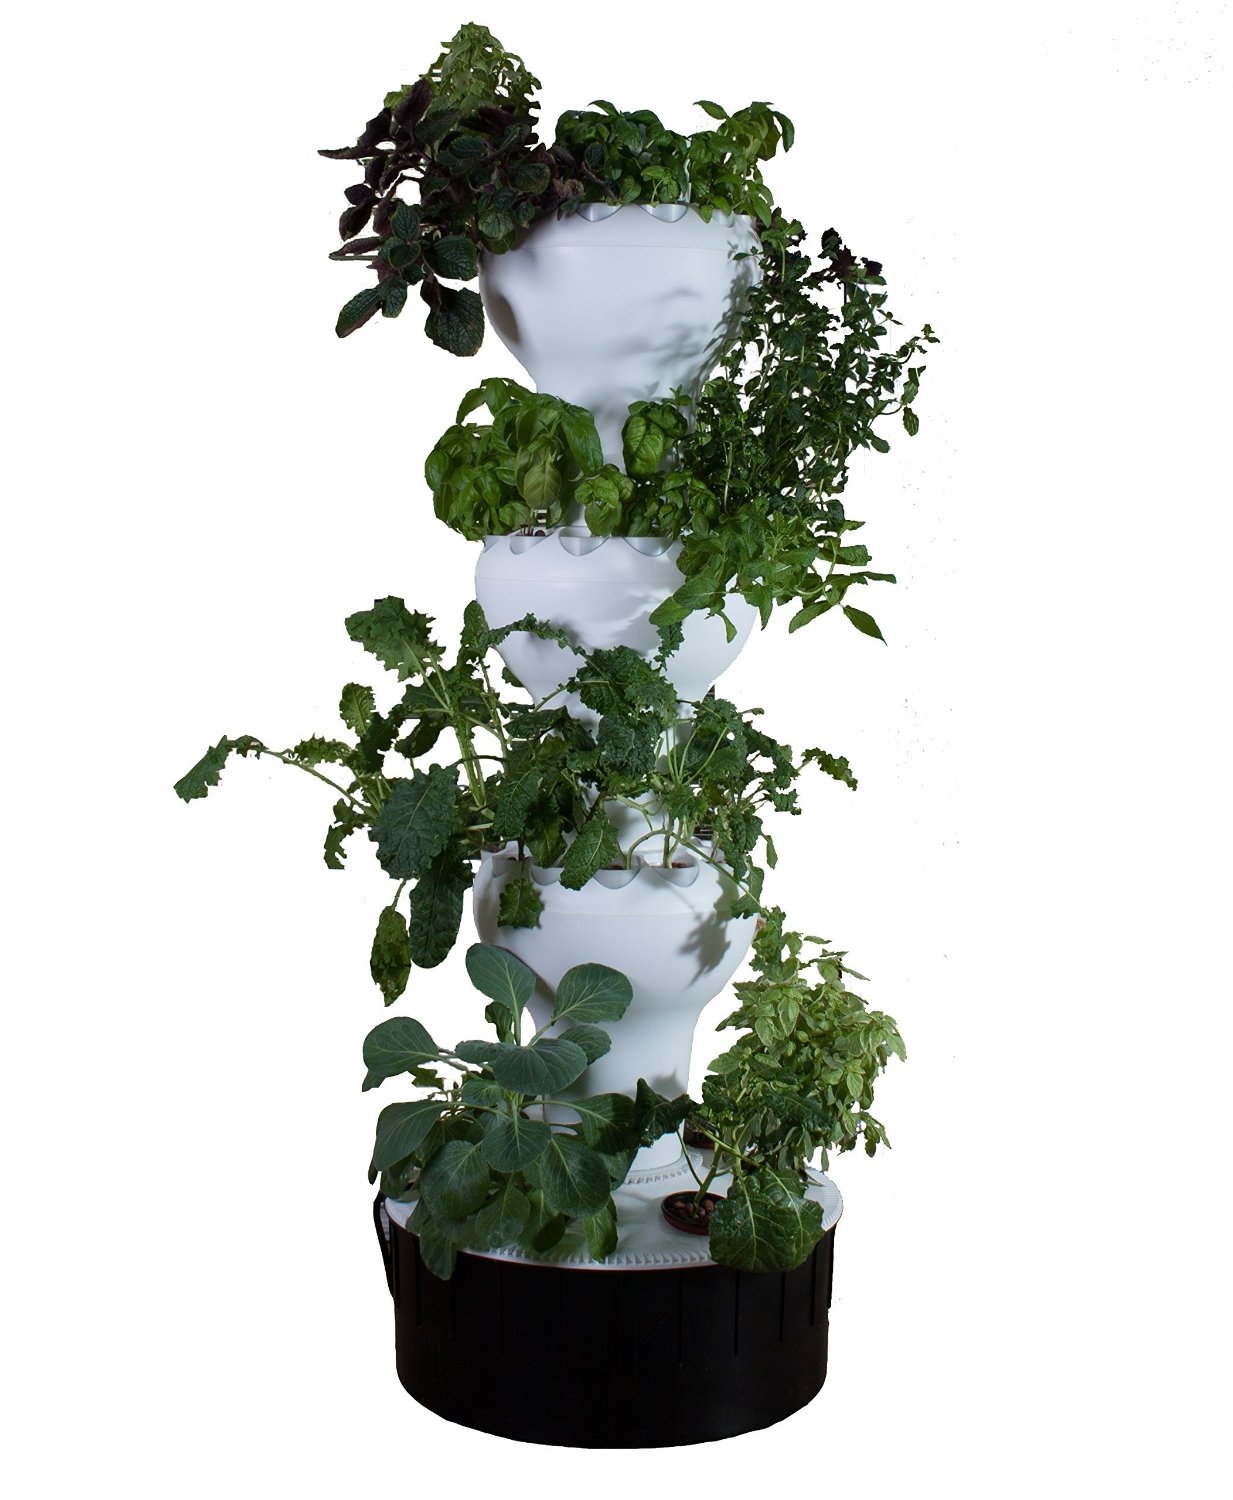 Hydroponics tower for plants